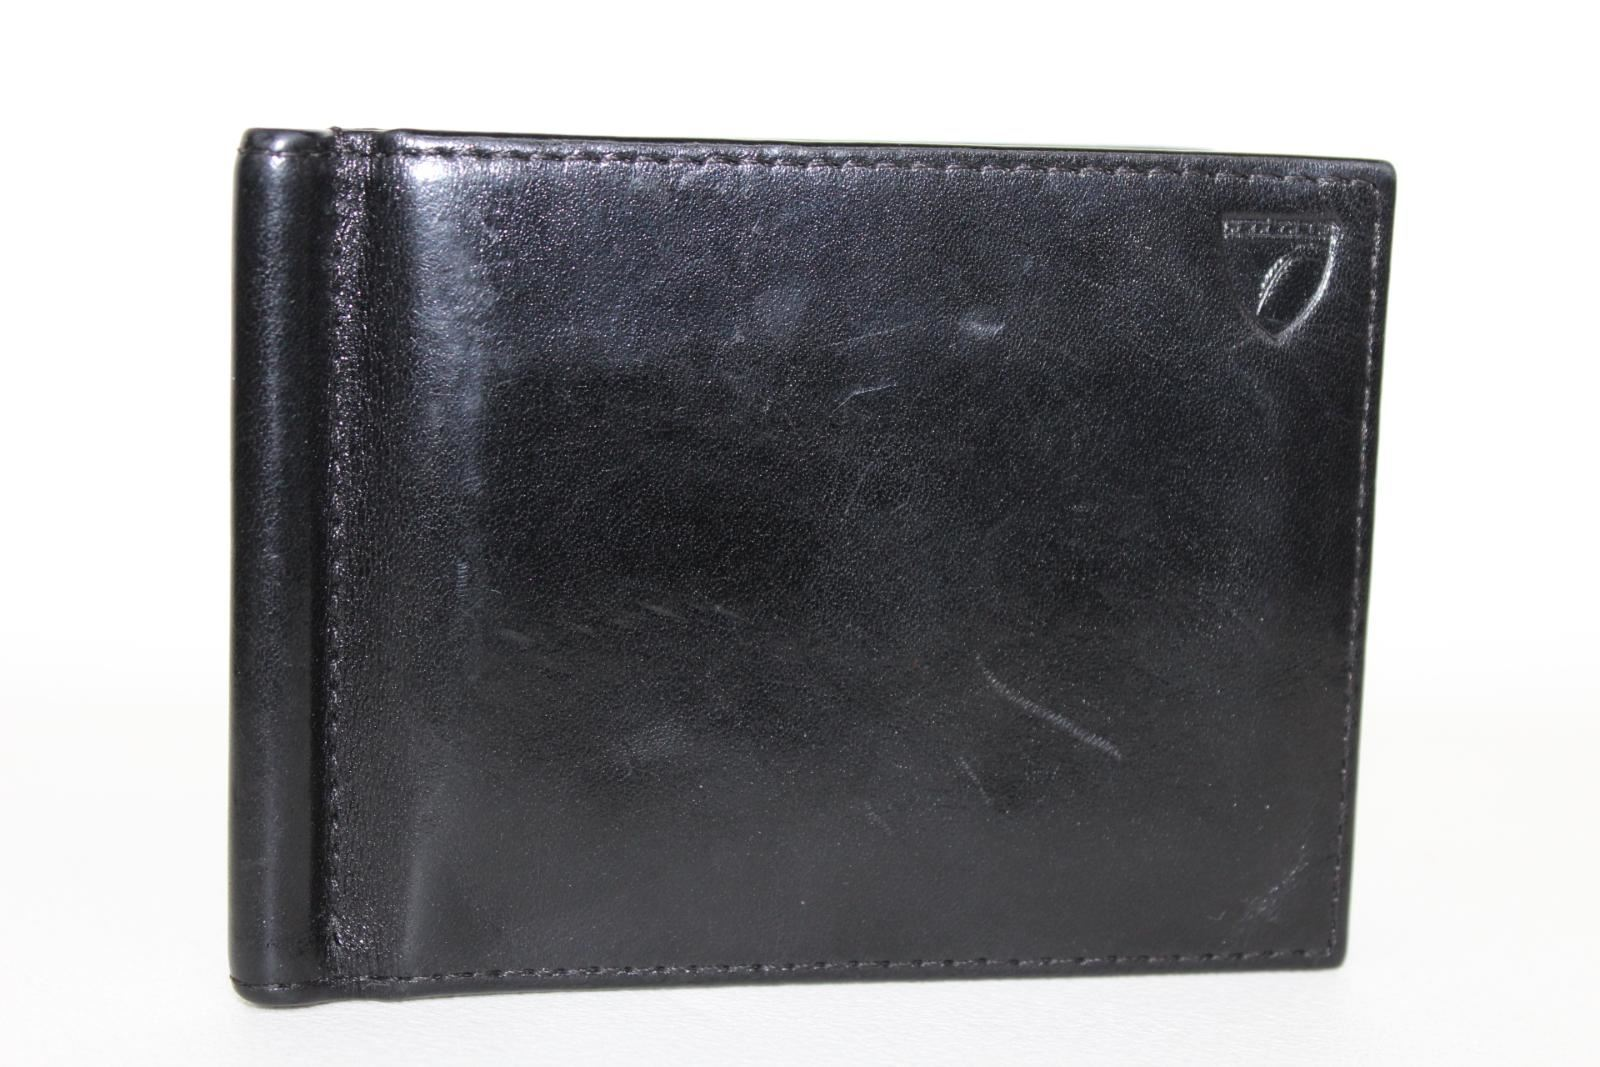 ASPINAL-OF-LONDON-Calf-Smooth-Black-Leather-Embossed-8-Card-Billfold-Wallet